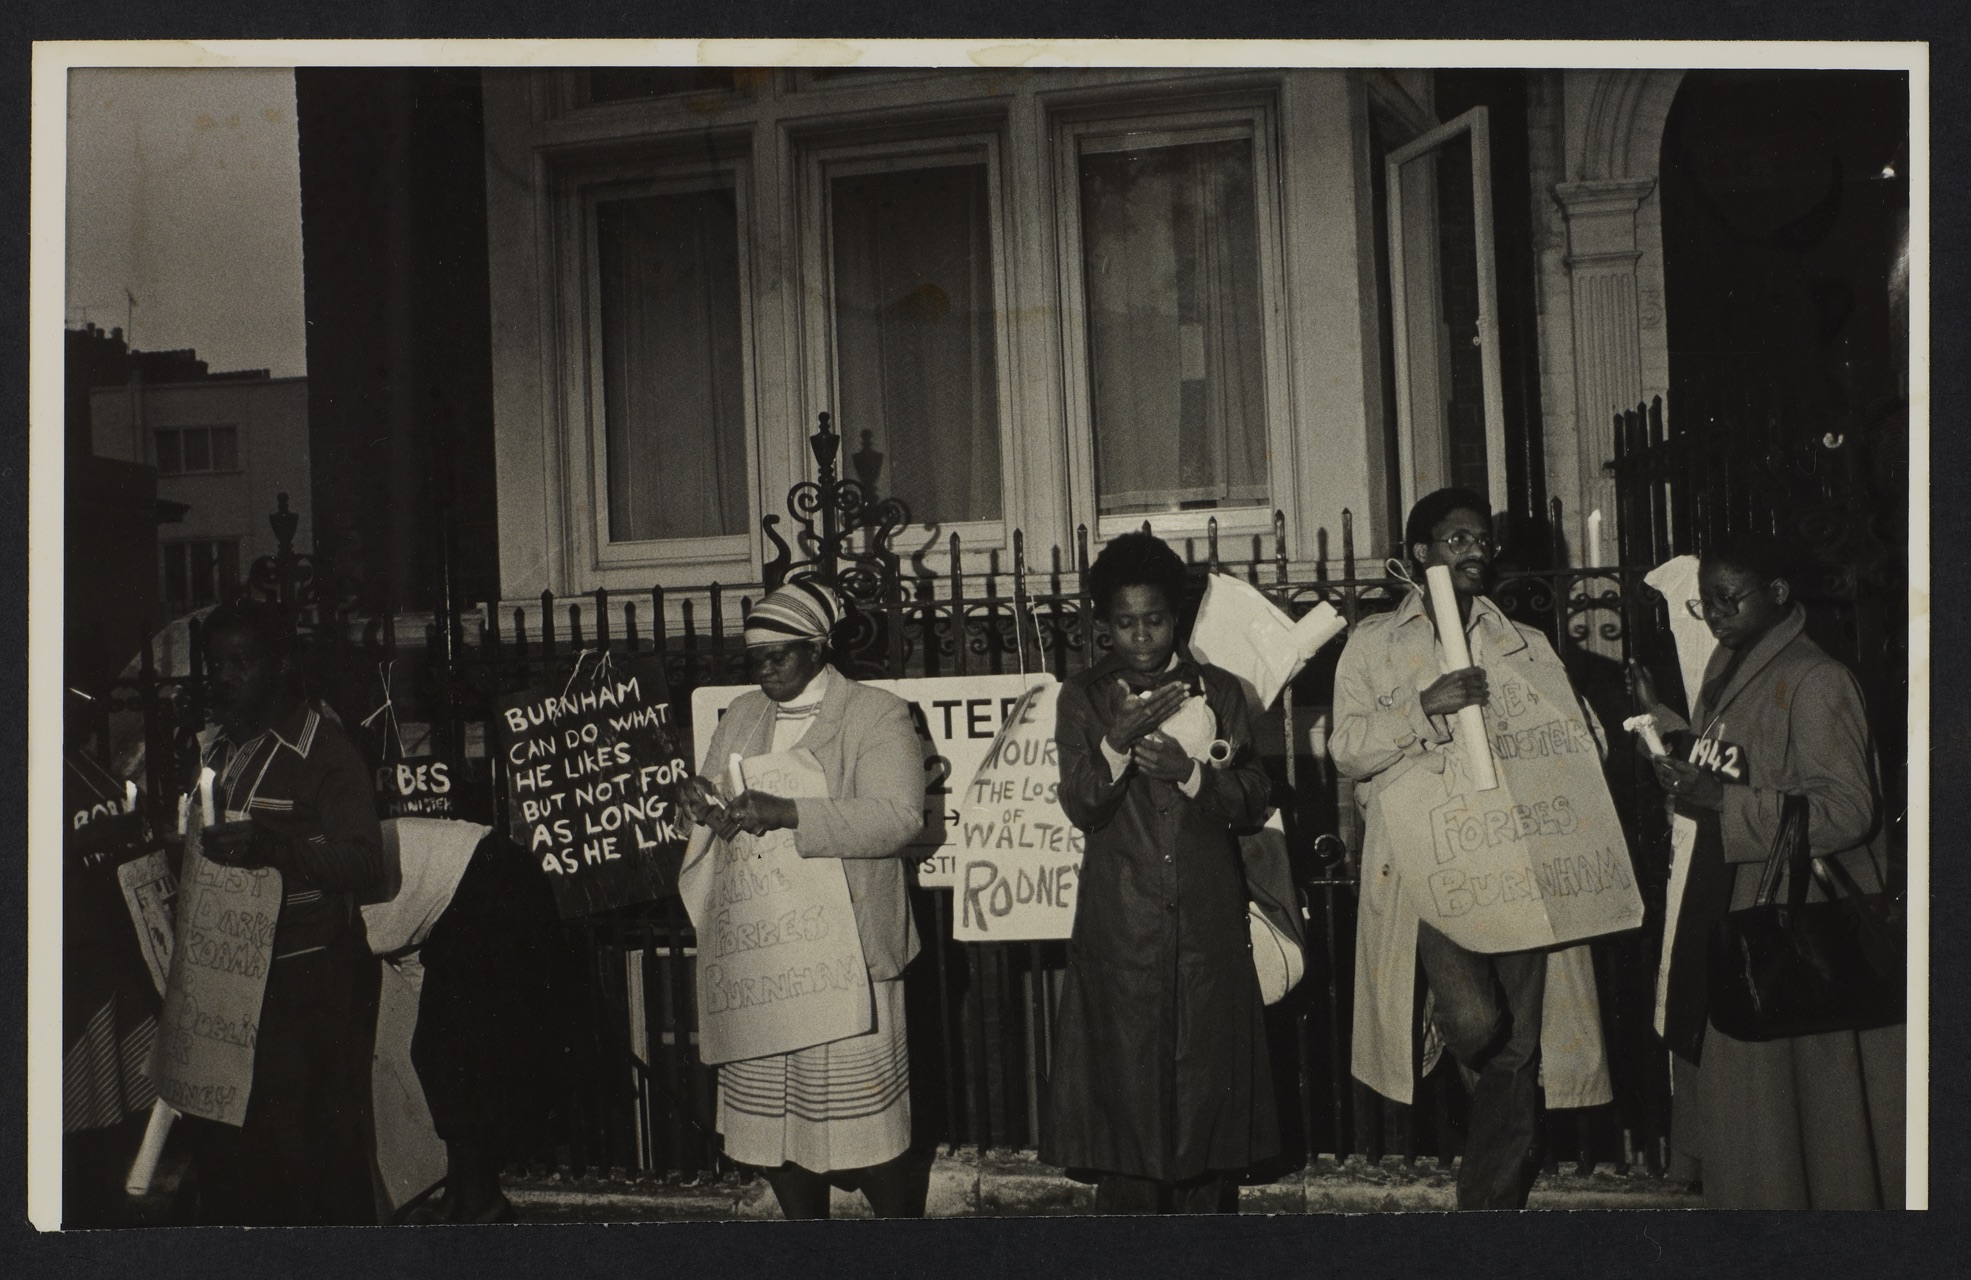 _19 Demonstration for Walter Rodney's murder, London c1980s. Huntley Archives at London Metropolitan